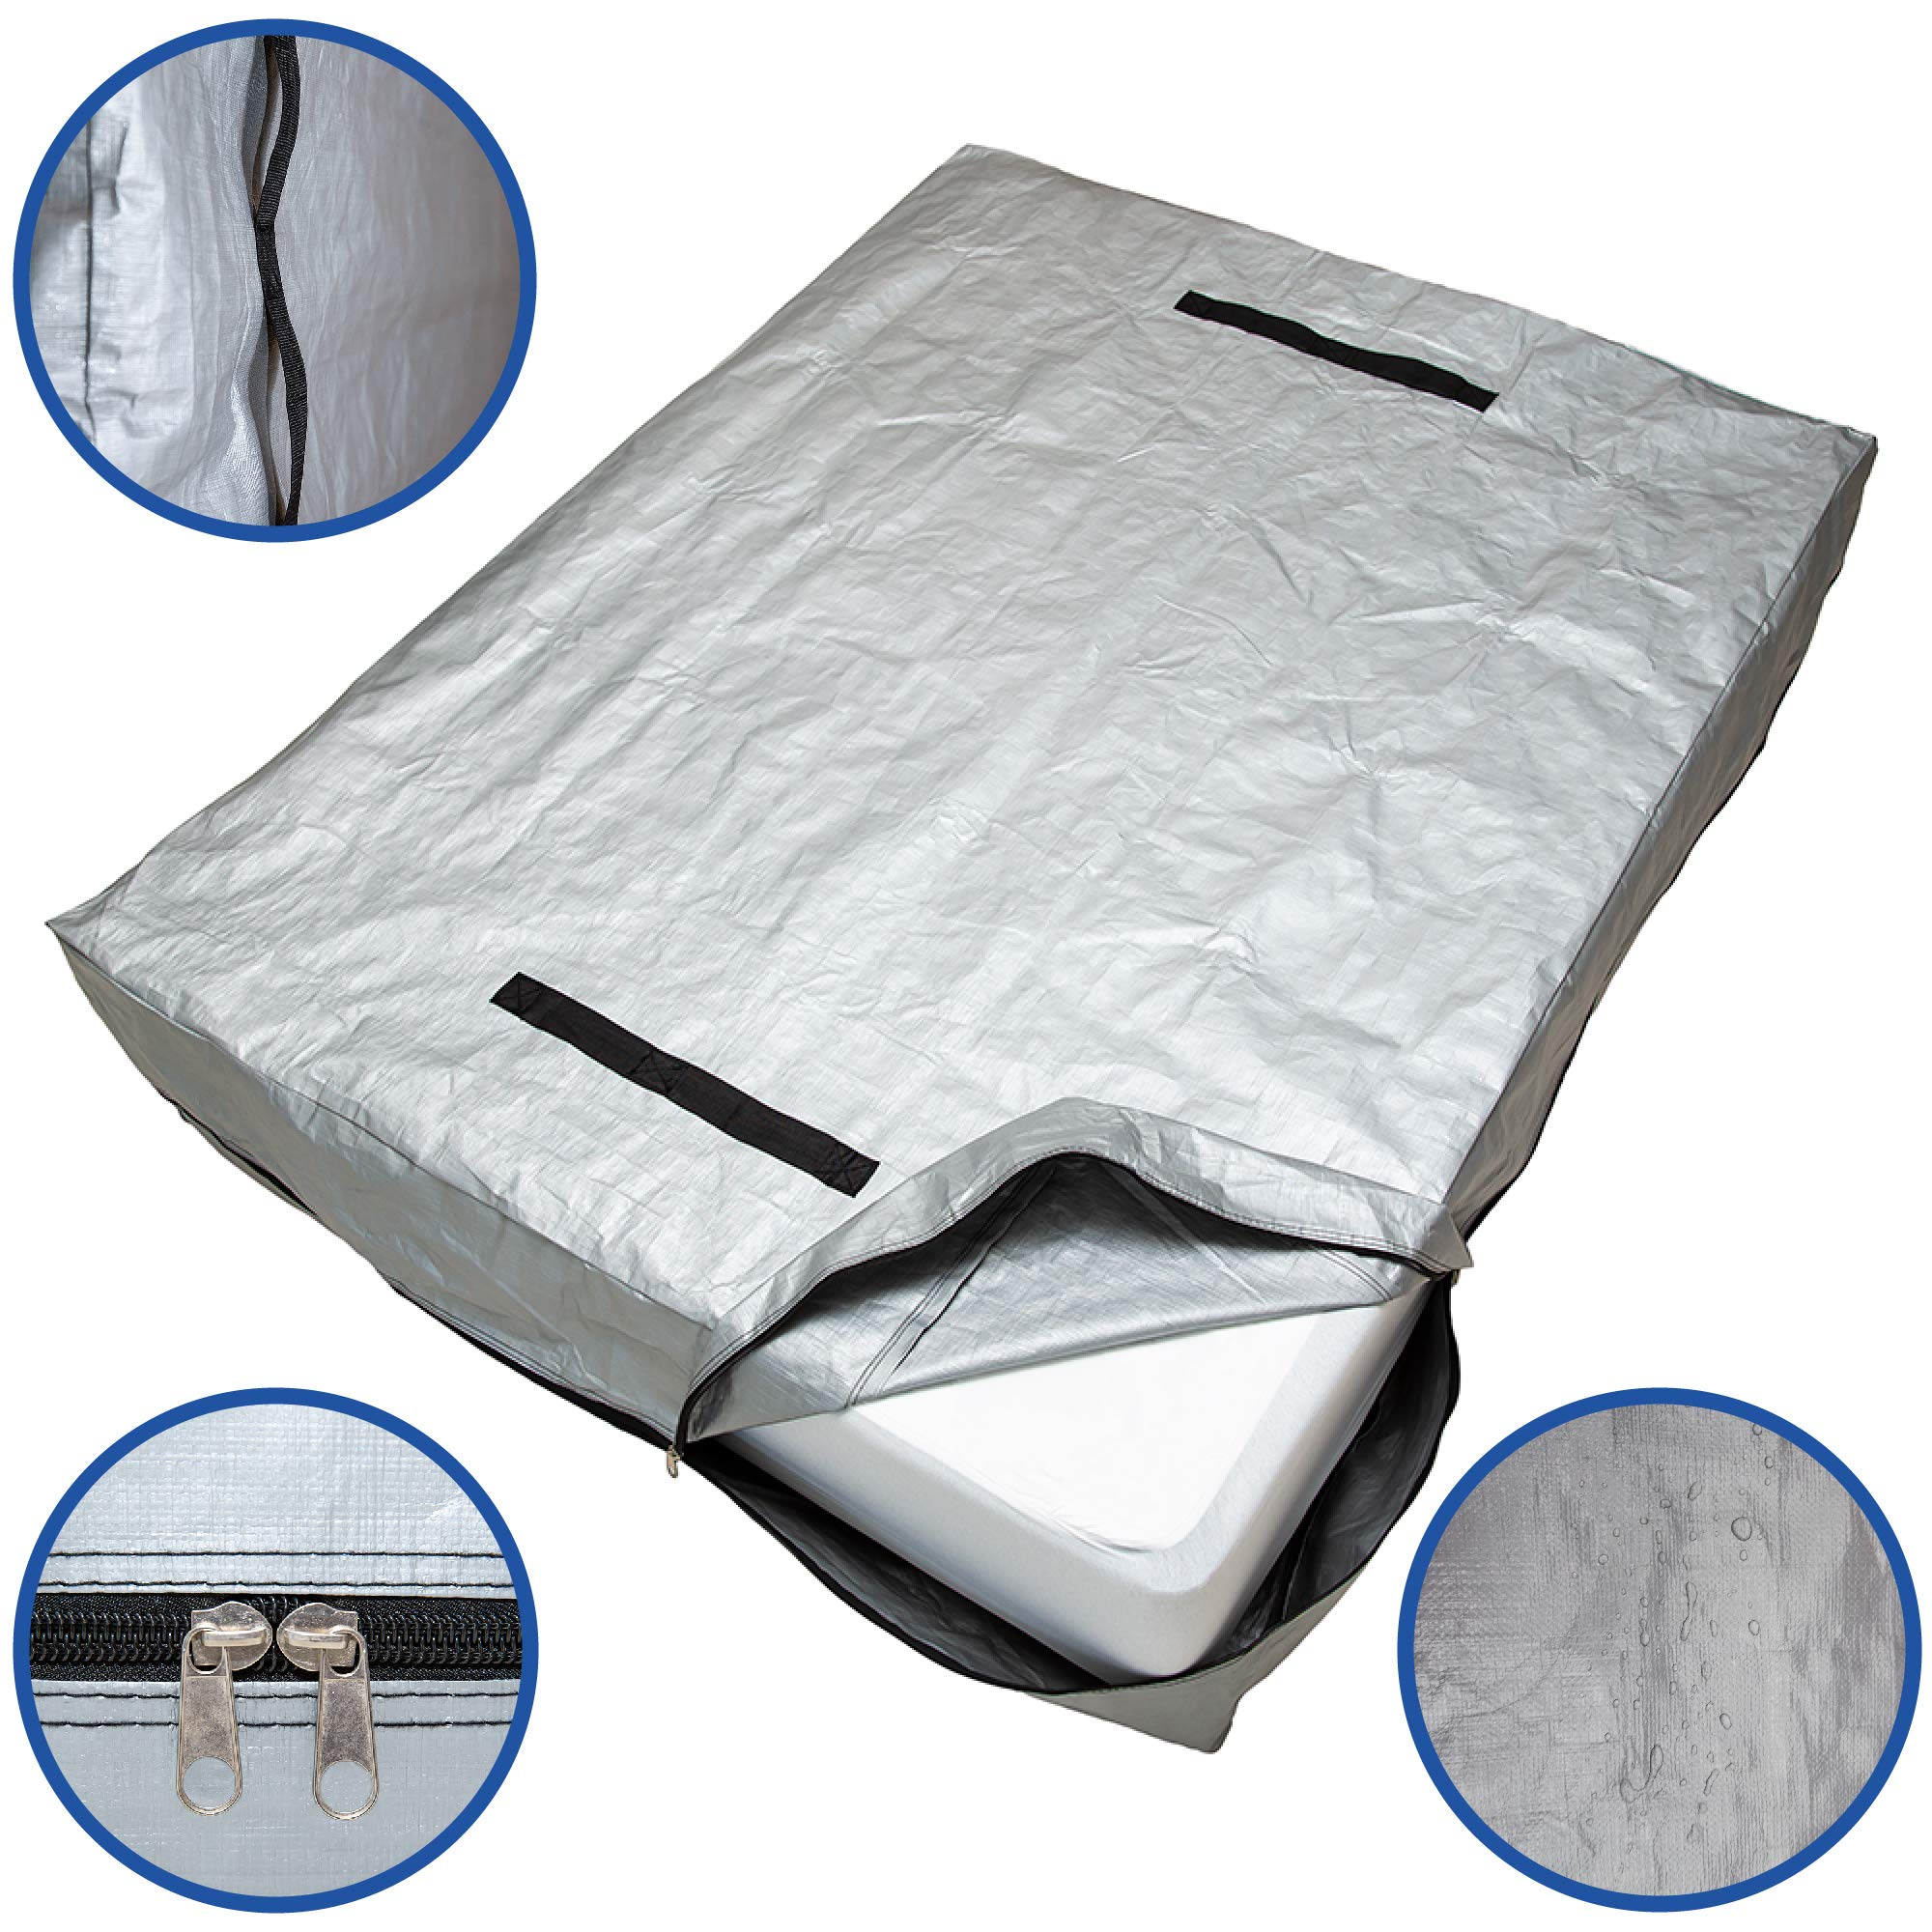 Caloona Inc Mattress Bags for Moving and Storage-Reusable Mattress Cover for Moving with Reinforced Handles and Heavy Duty Zipper. Mattress Storage Bag Queen, King, Full, Twin Sizes (Twin) by Caloona Inc